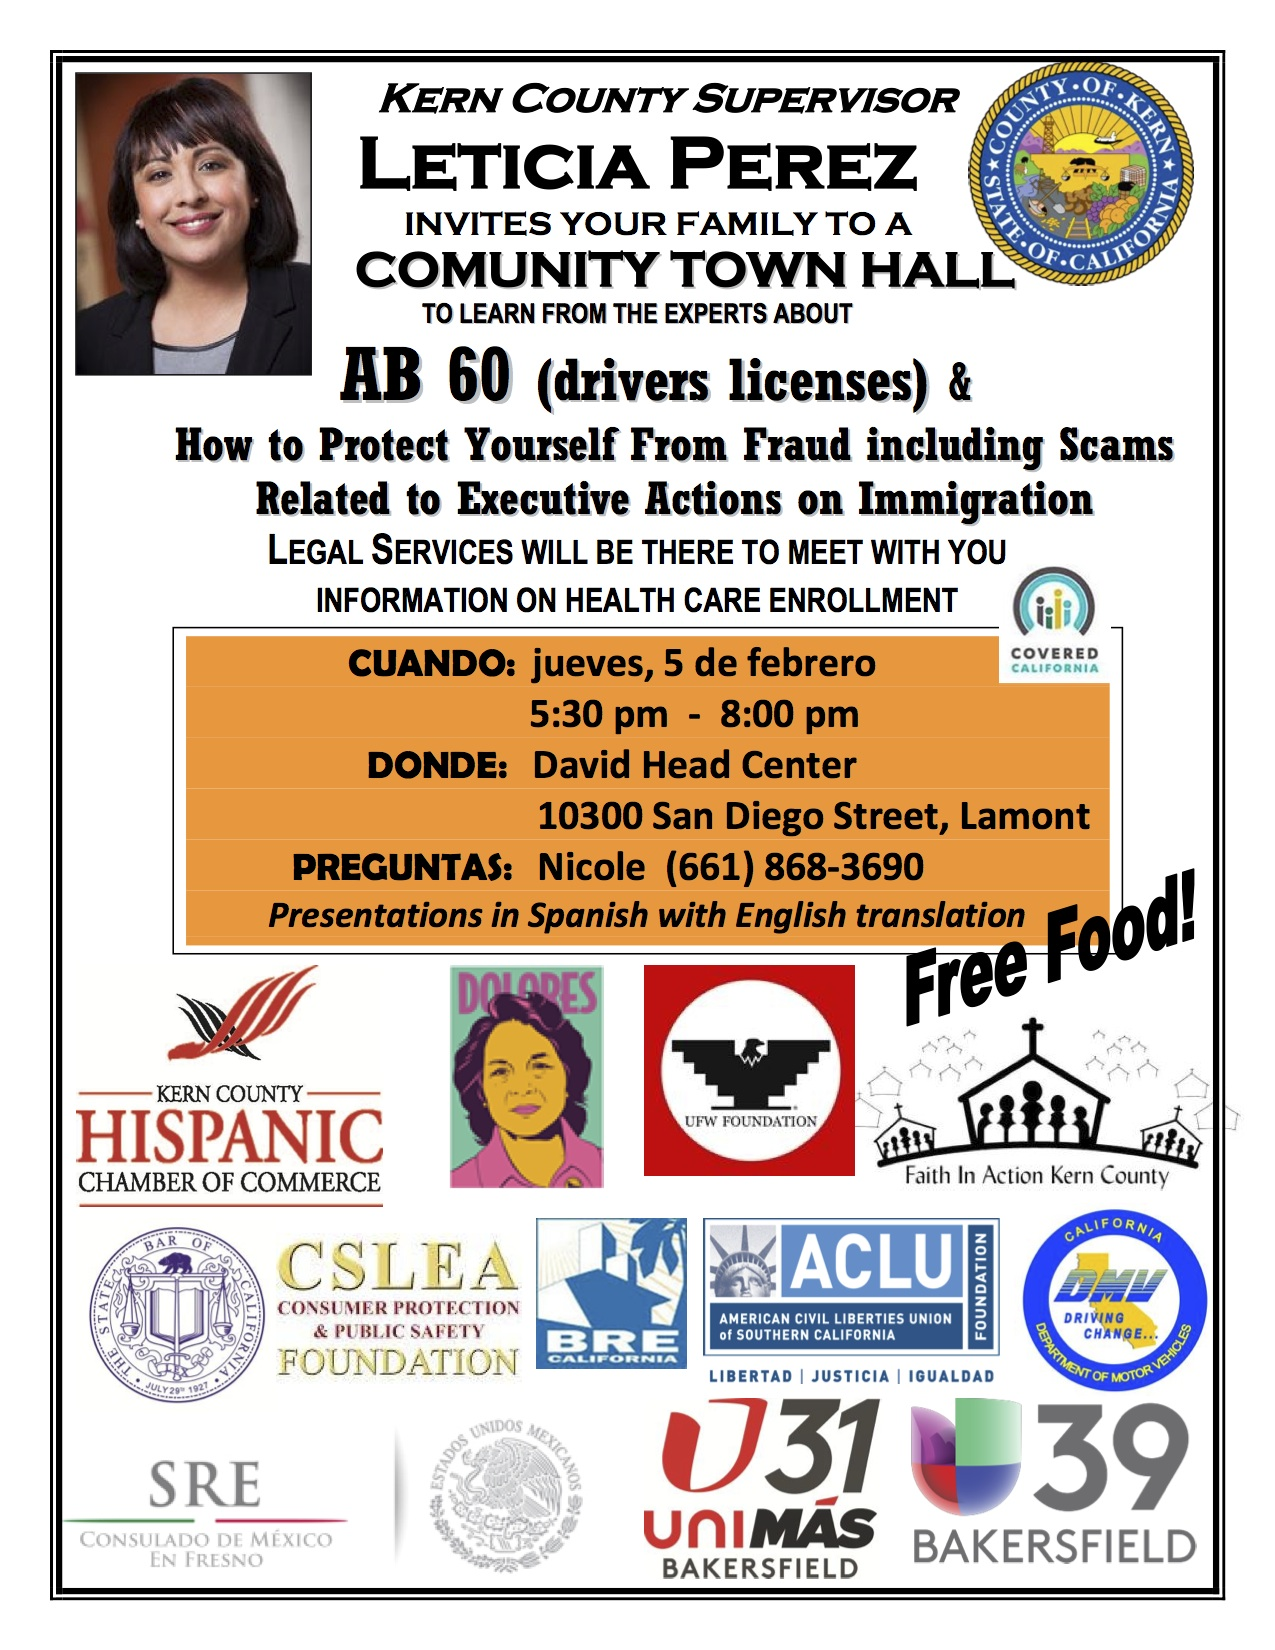 Leticia Perez town hall flyer.English